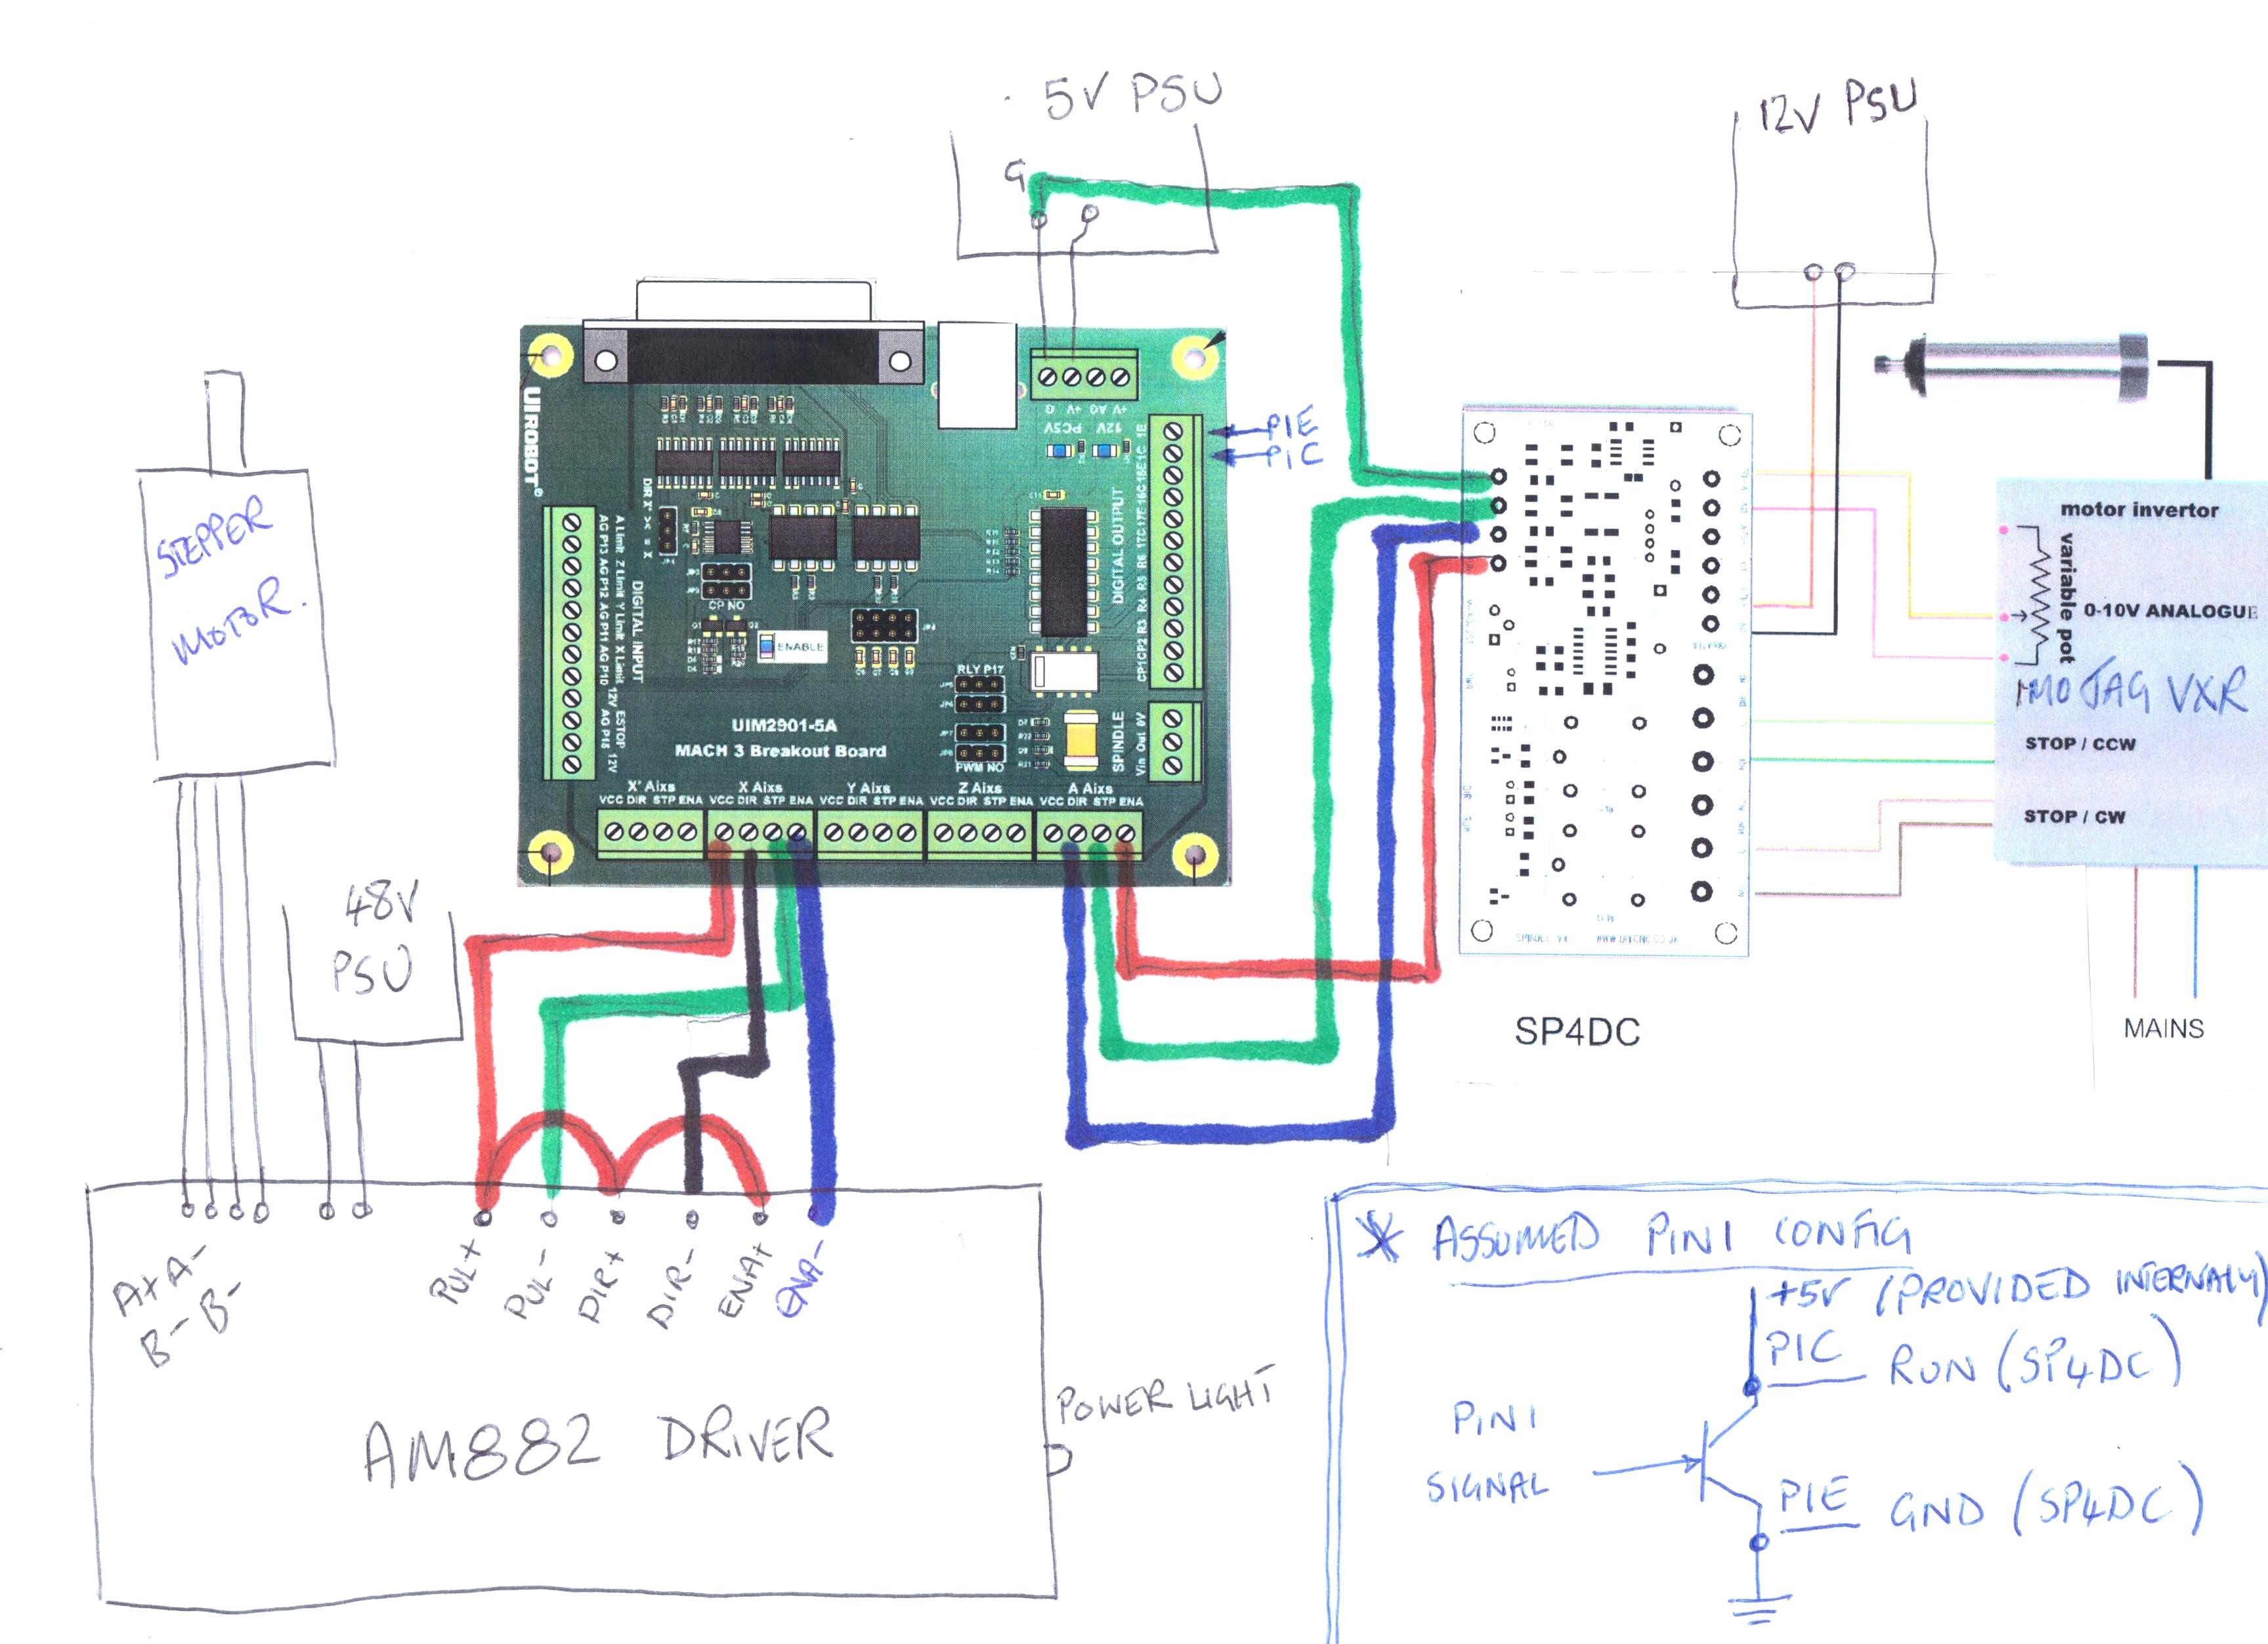 Cnc Limit Switch Wiring Diagram from mainetreasurechest.com